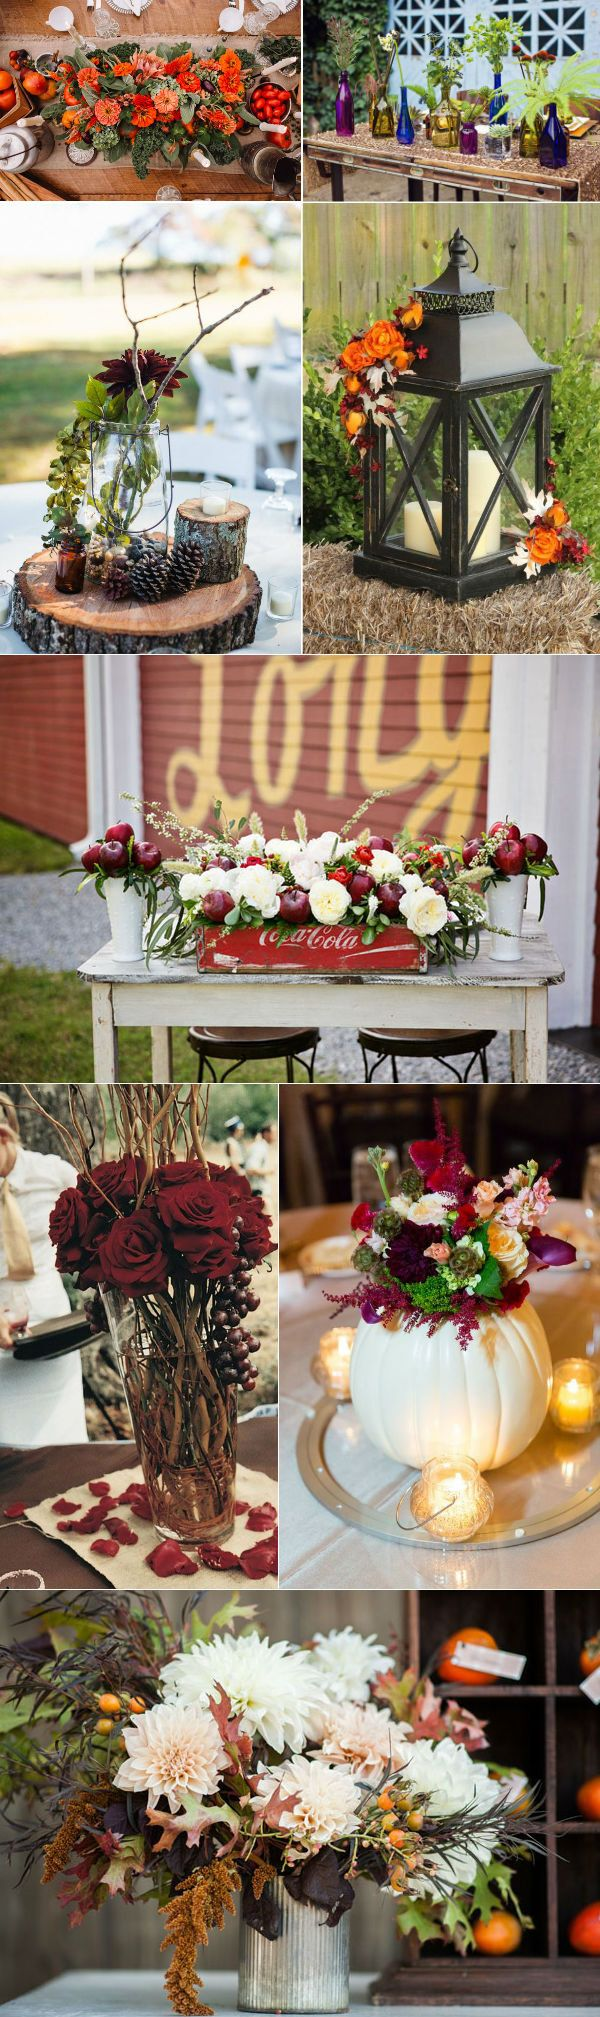 82 Best Wedding Inspiration Images On Pinterest Harvest Table